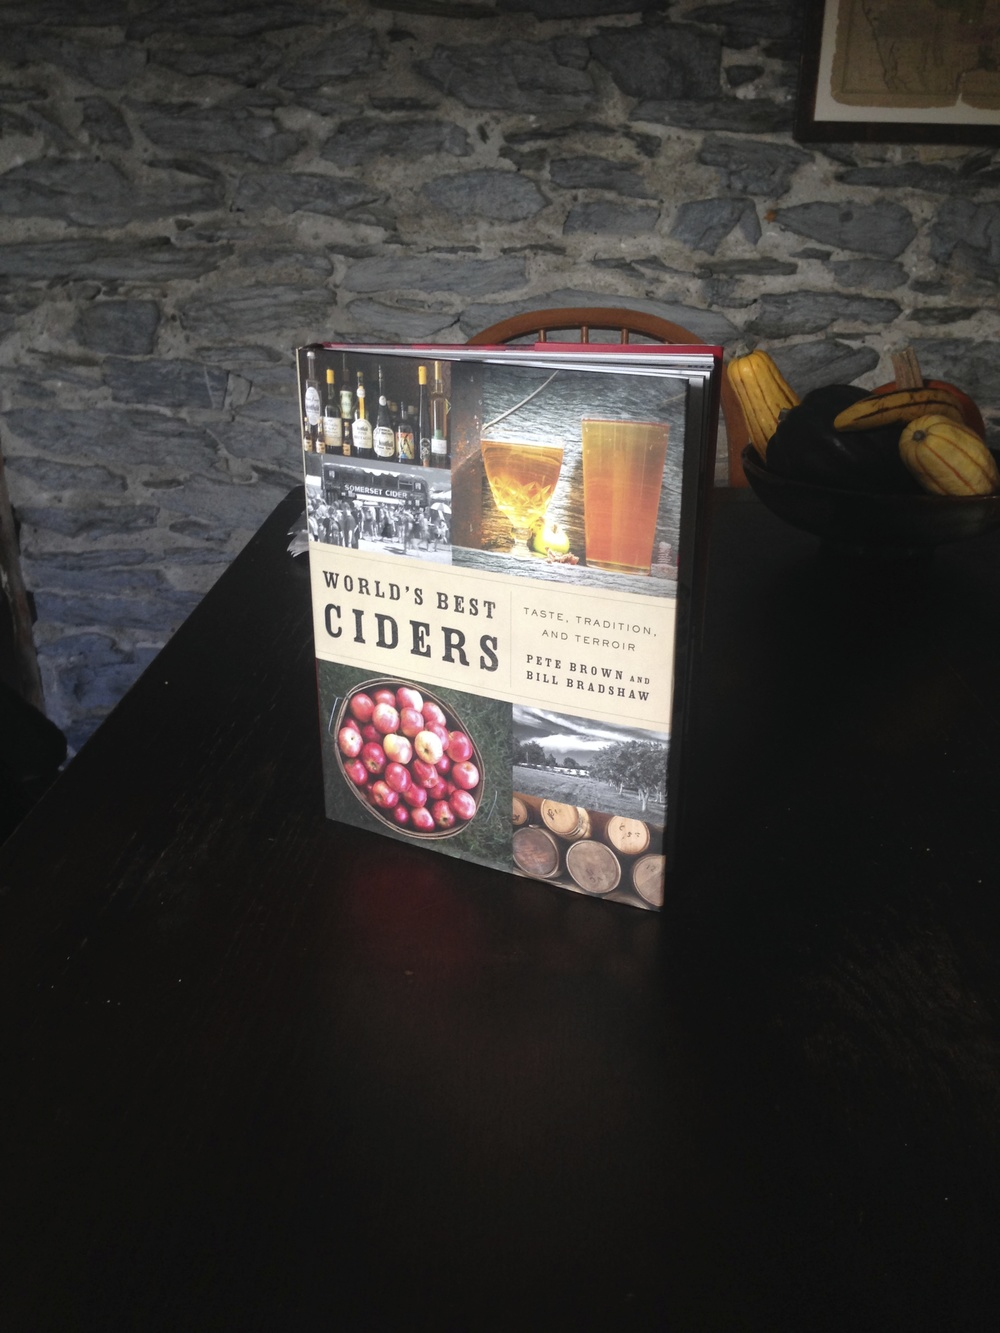 Bill Bradshaw's newest book. Incredible photos and great narrative on the cider renaissance.